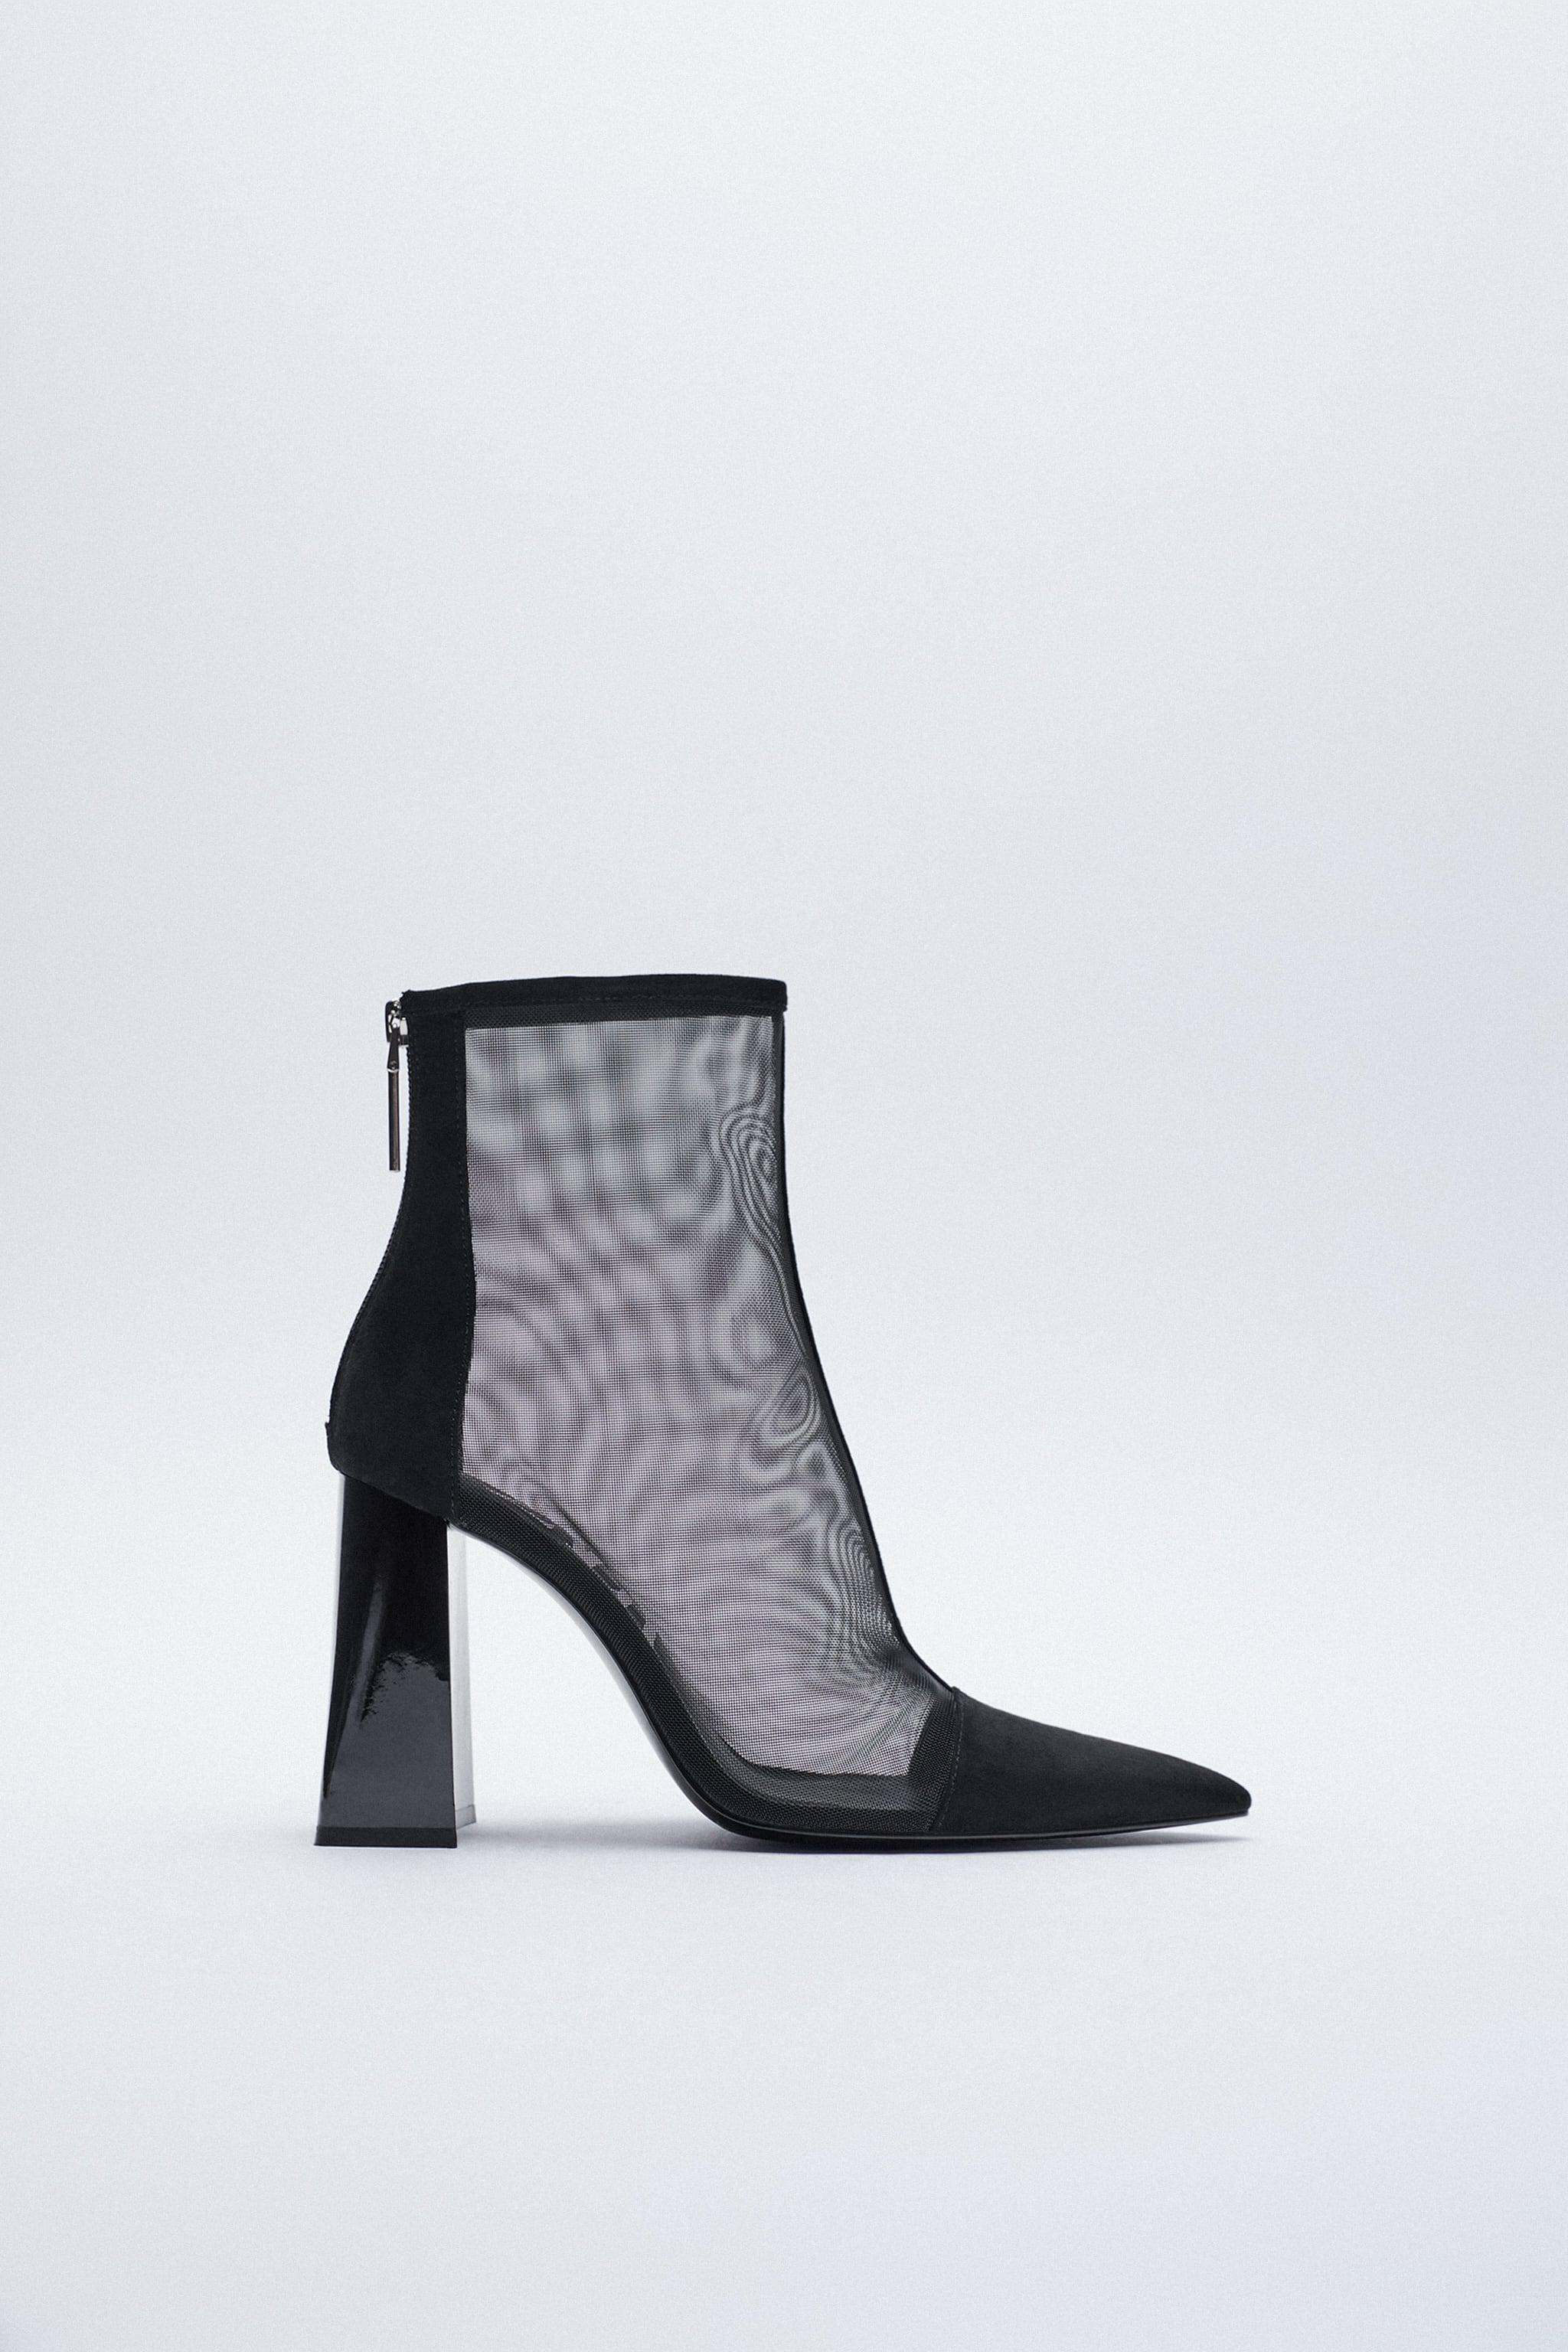 WIDE HEEL MESH ANKLE BOOTS